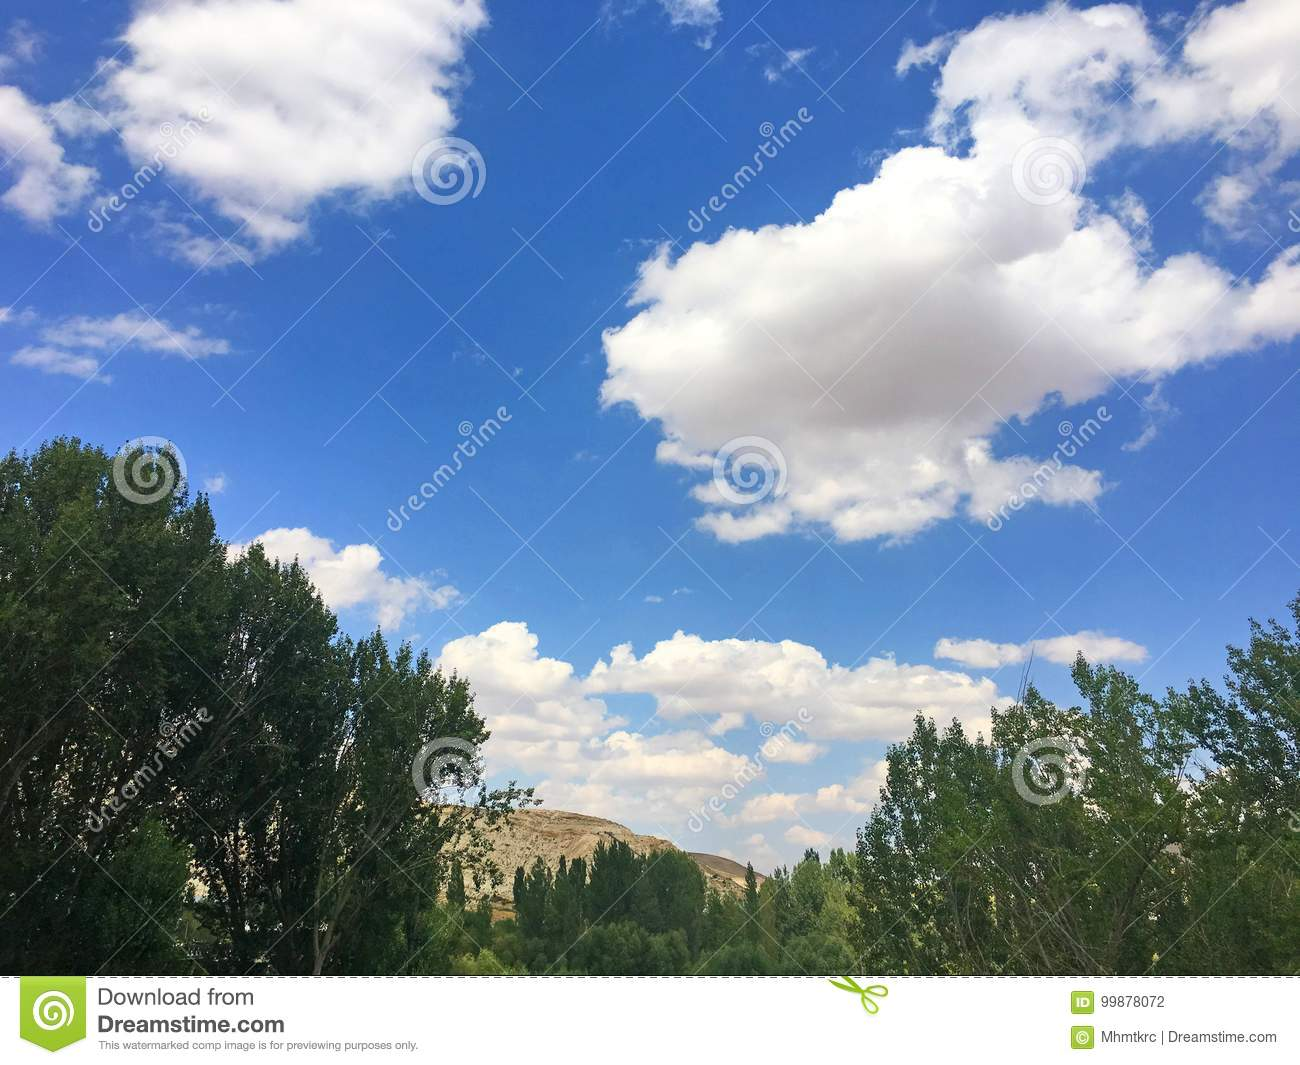 Blue Sky, Clouds and Trees